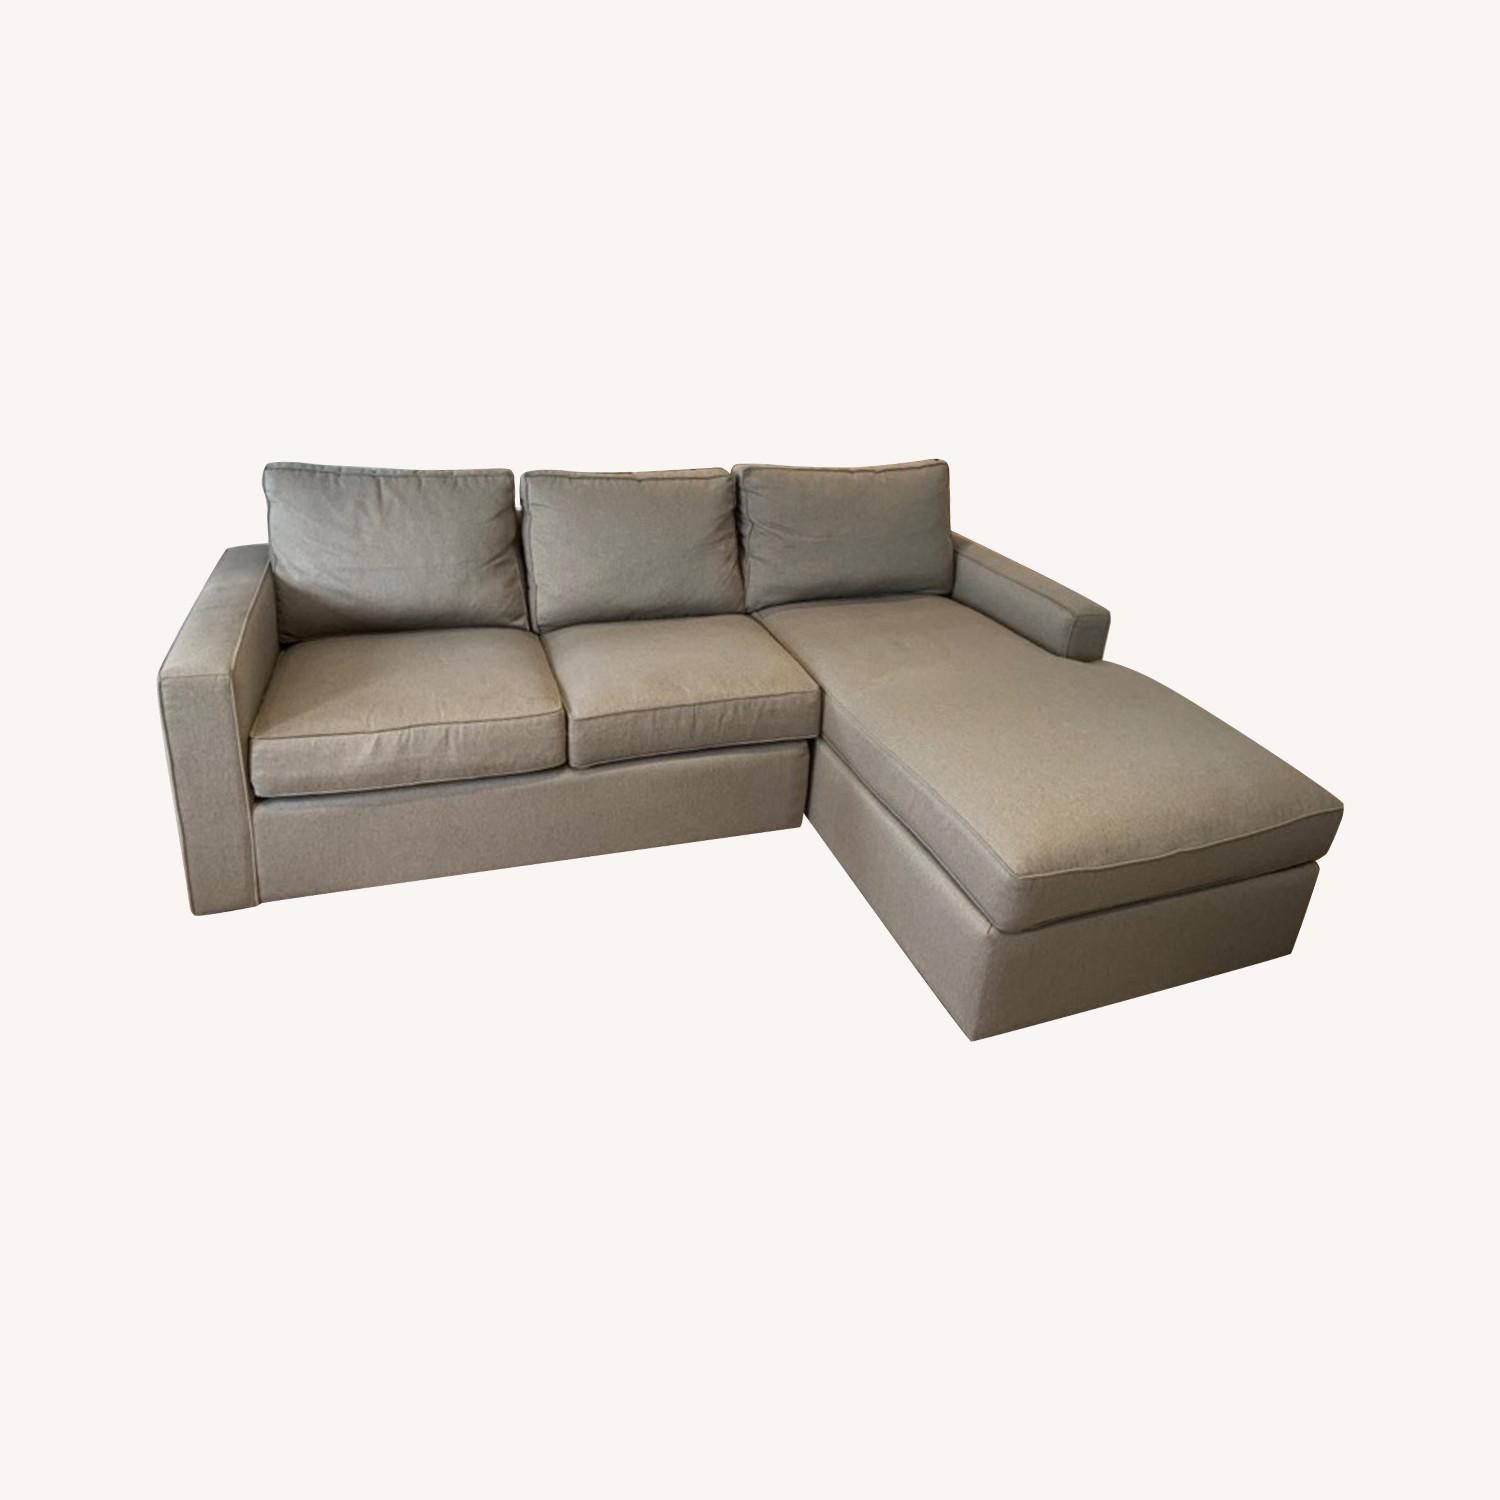 Room & Board York Sofa with Chaise - image-0